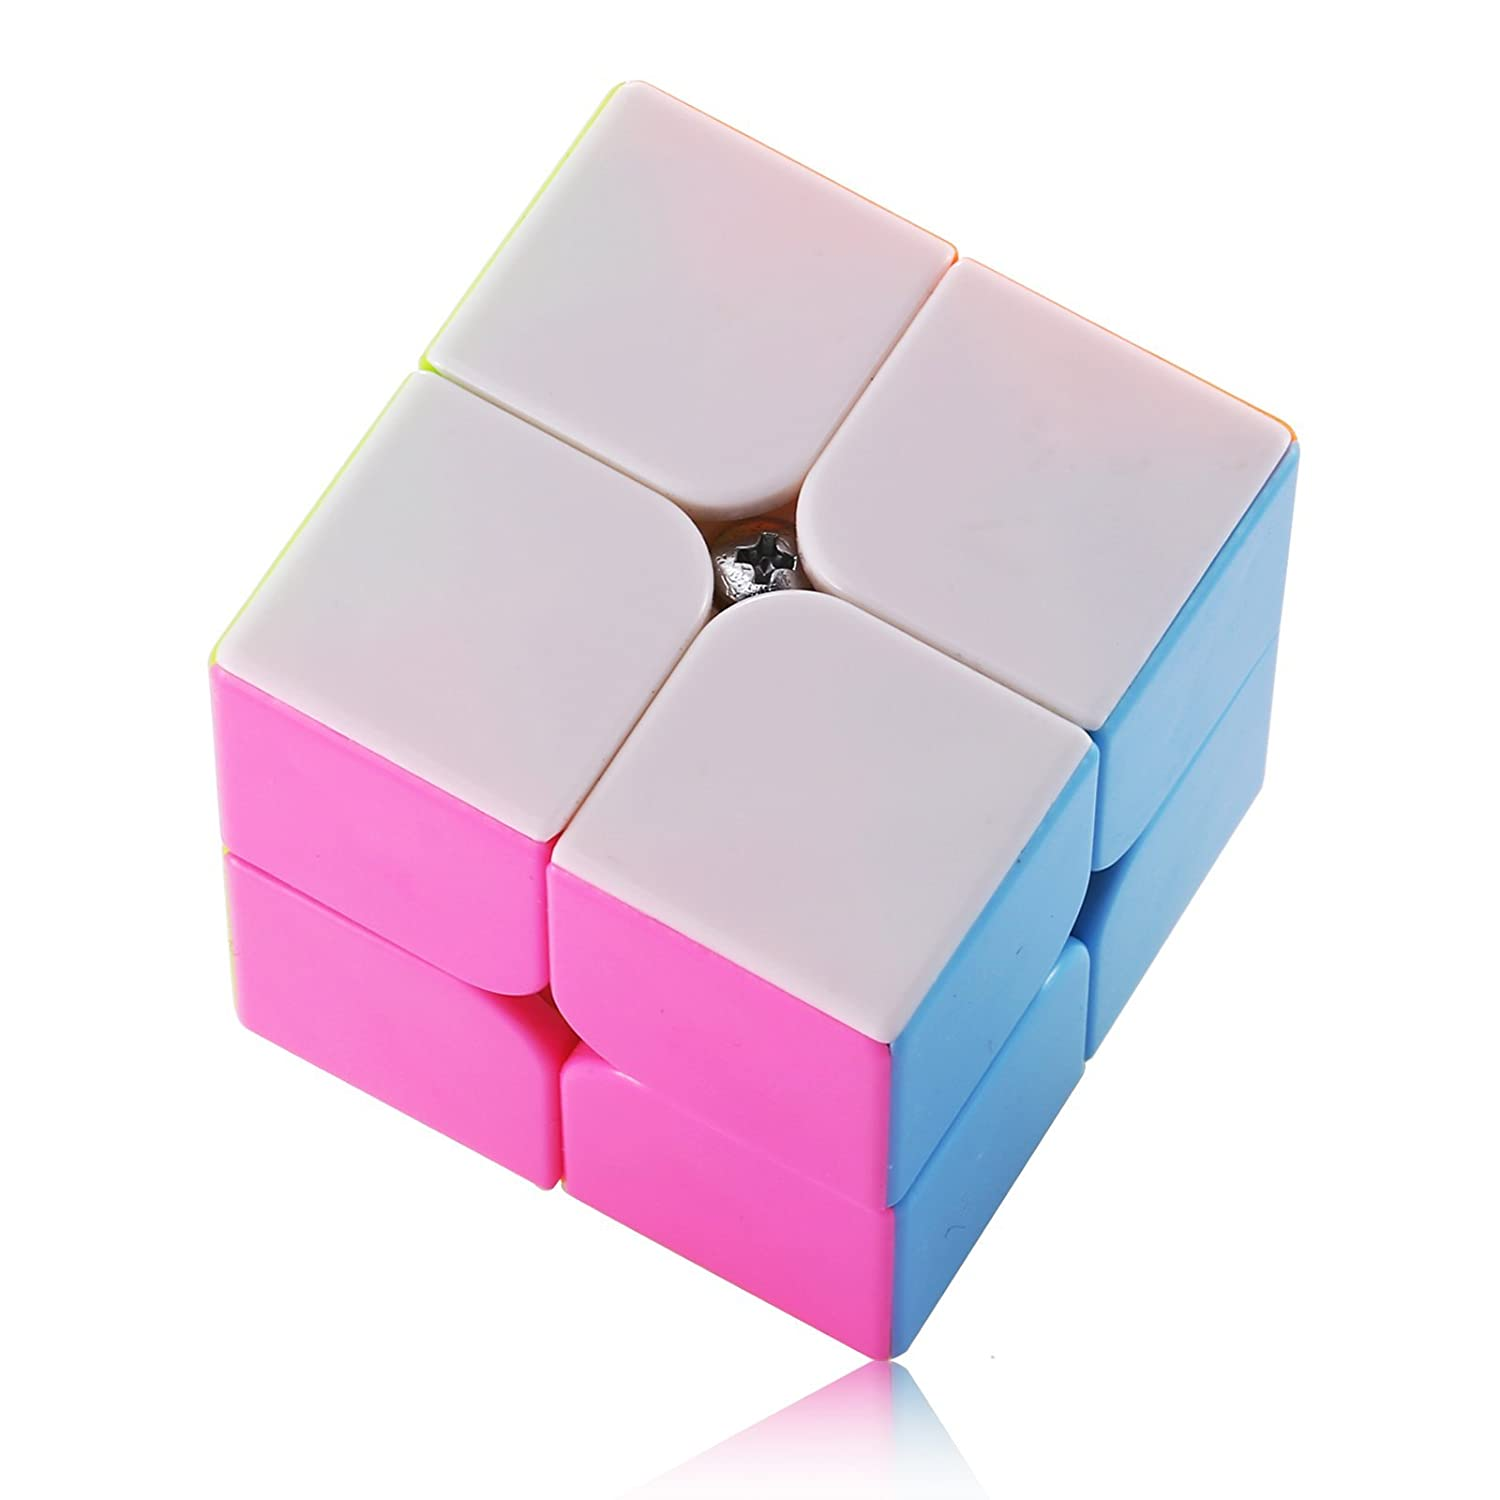 Dreampark 2x2 Speed Cube Stickerless Smooth Magic Cube Puzzles - 100% Money Back Guarantee!